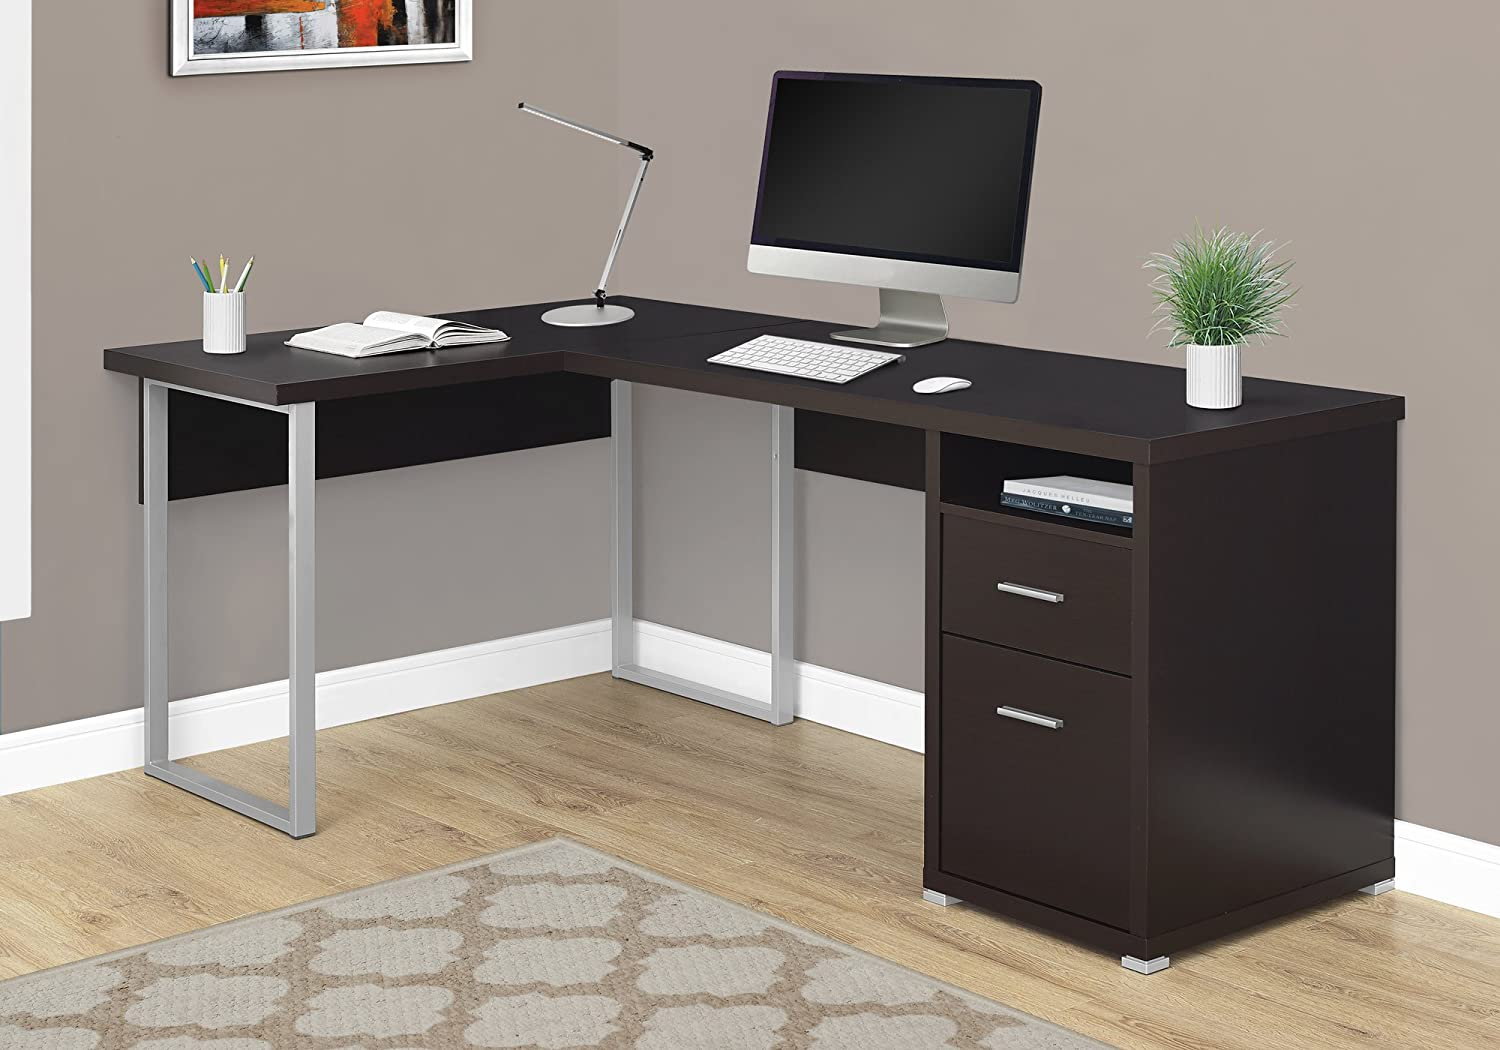 monarch specialties computer desk l shaped corner desk with file cabinet left or right set up 80 l cappuccino